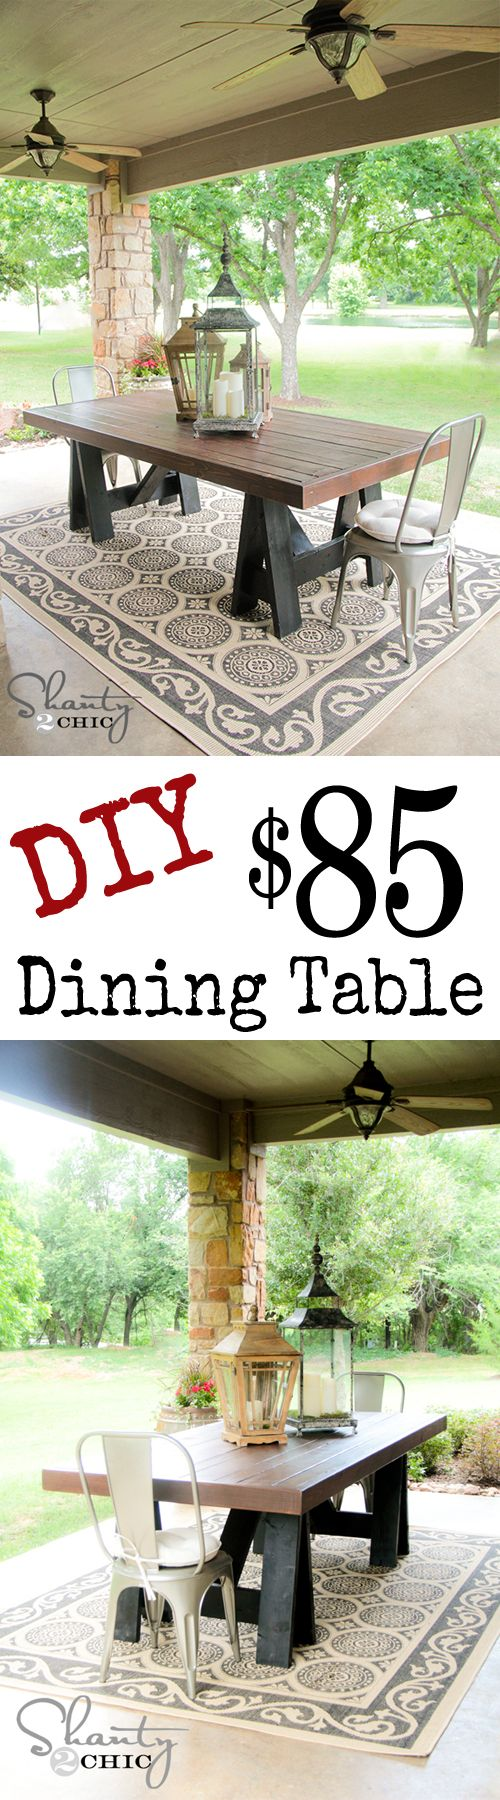 DIY Pottery Barn Dining Table